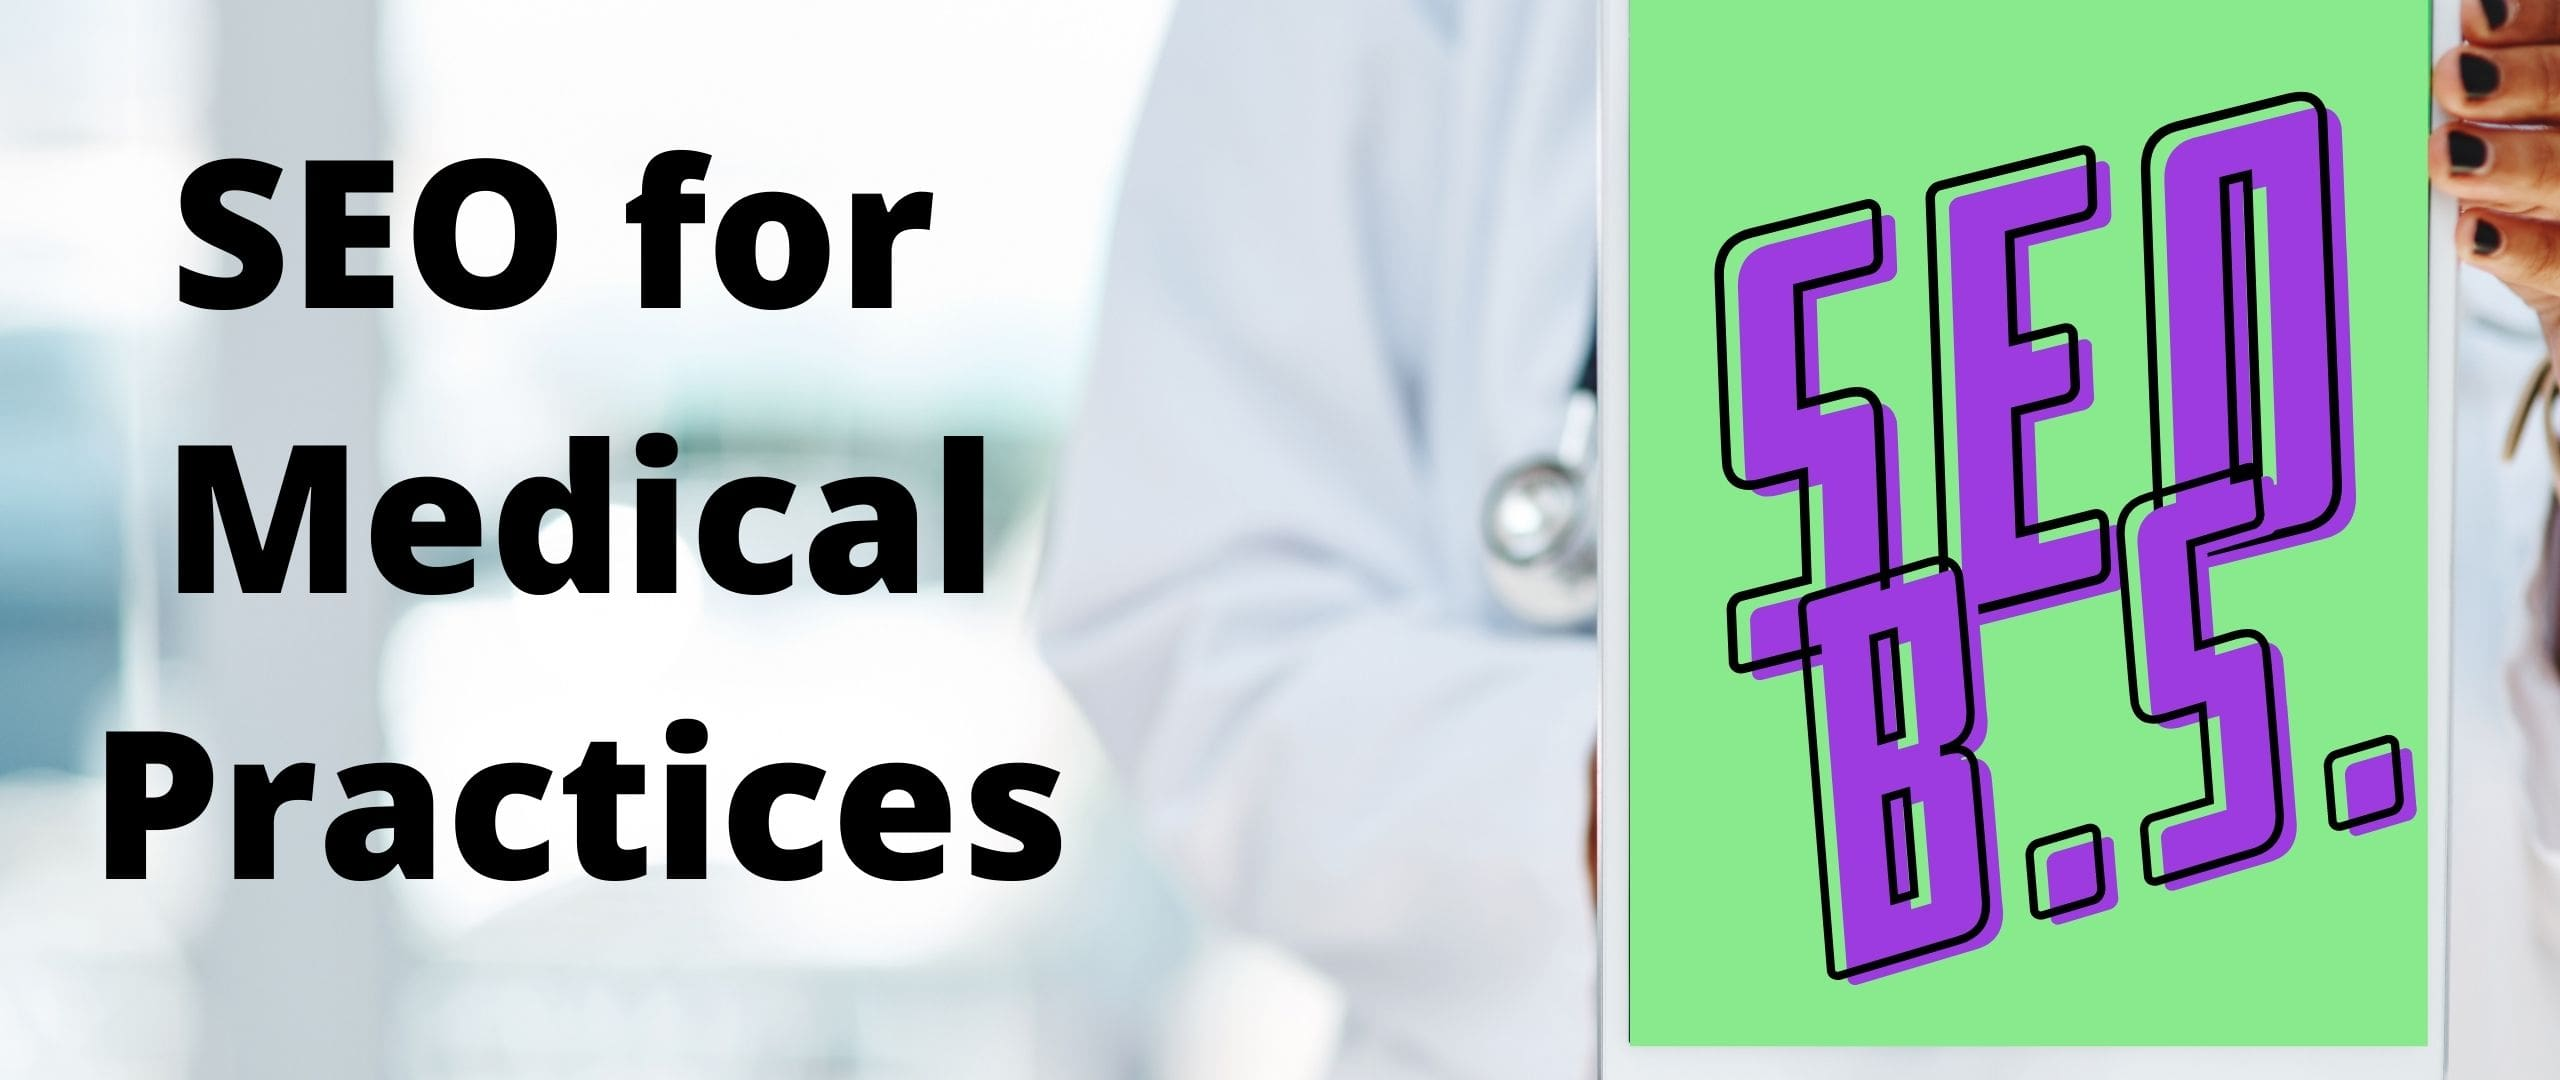 picture of the SEO for Medical Practices banner